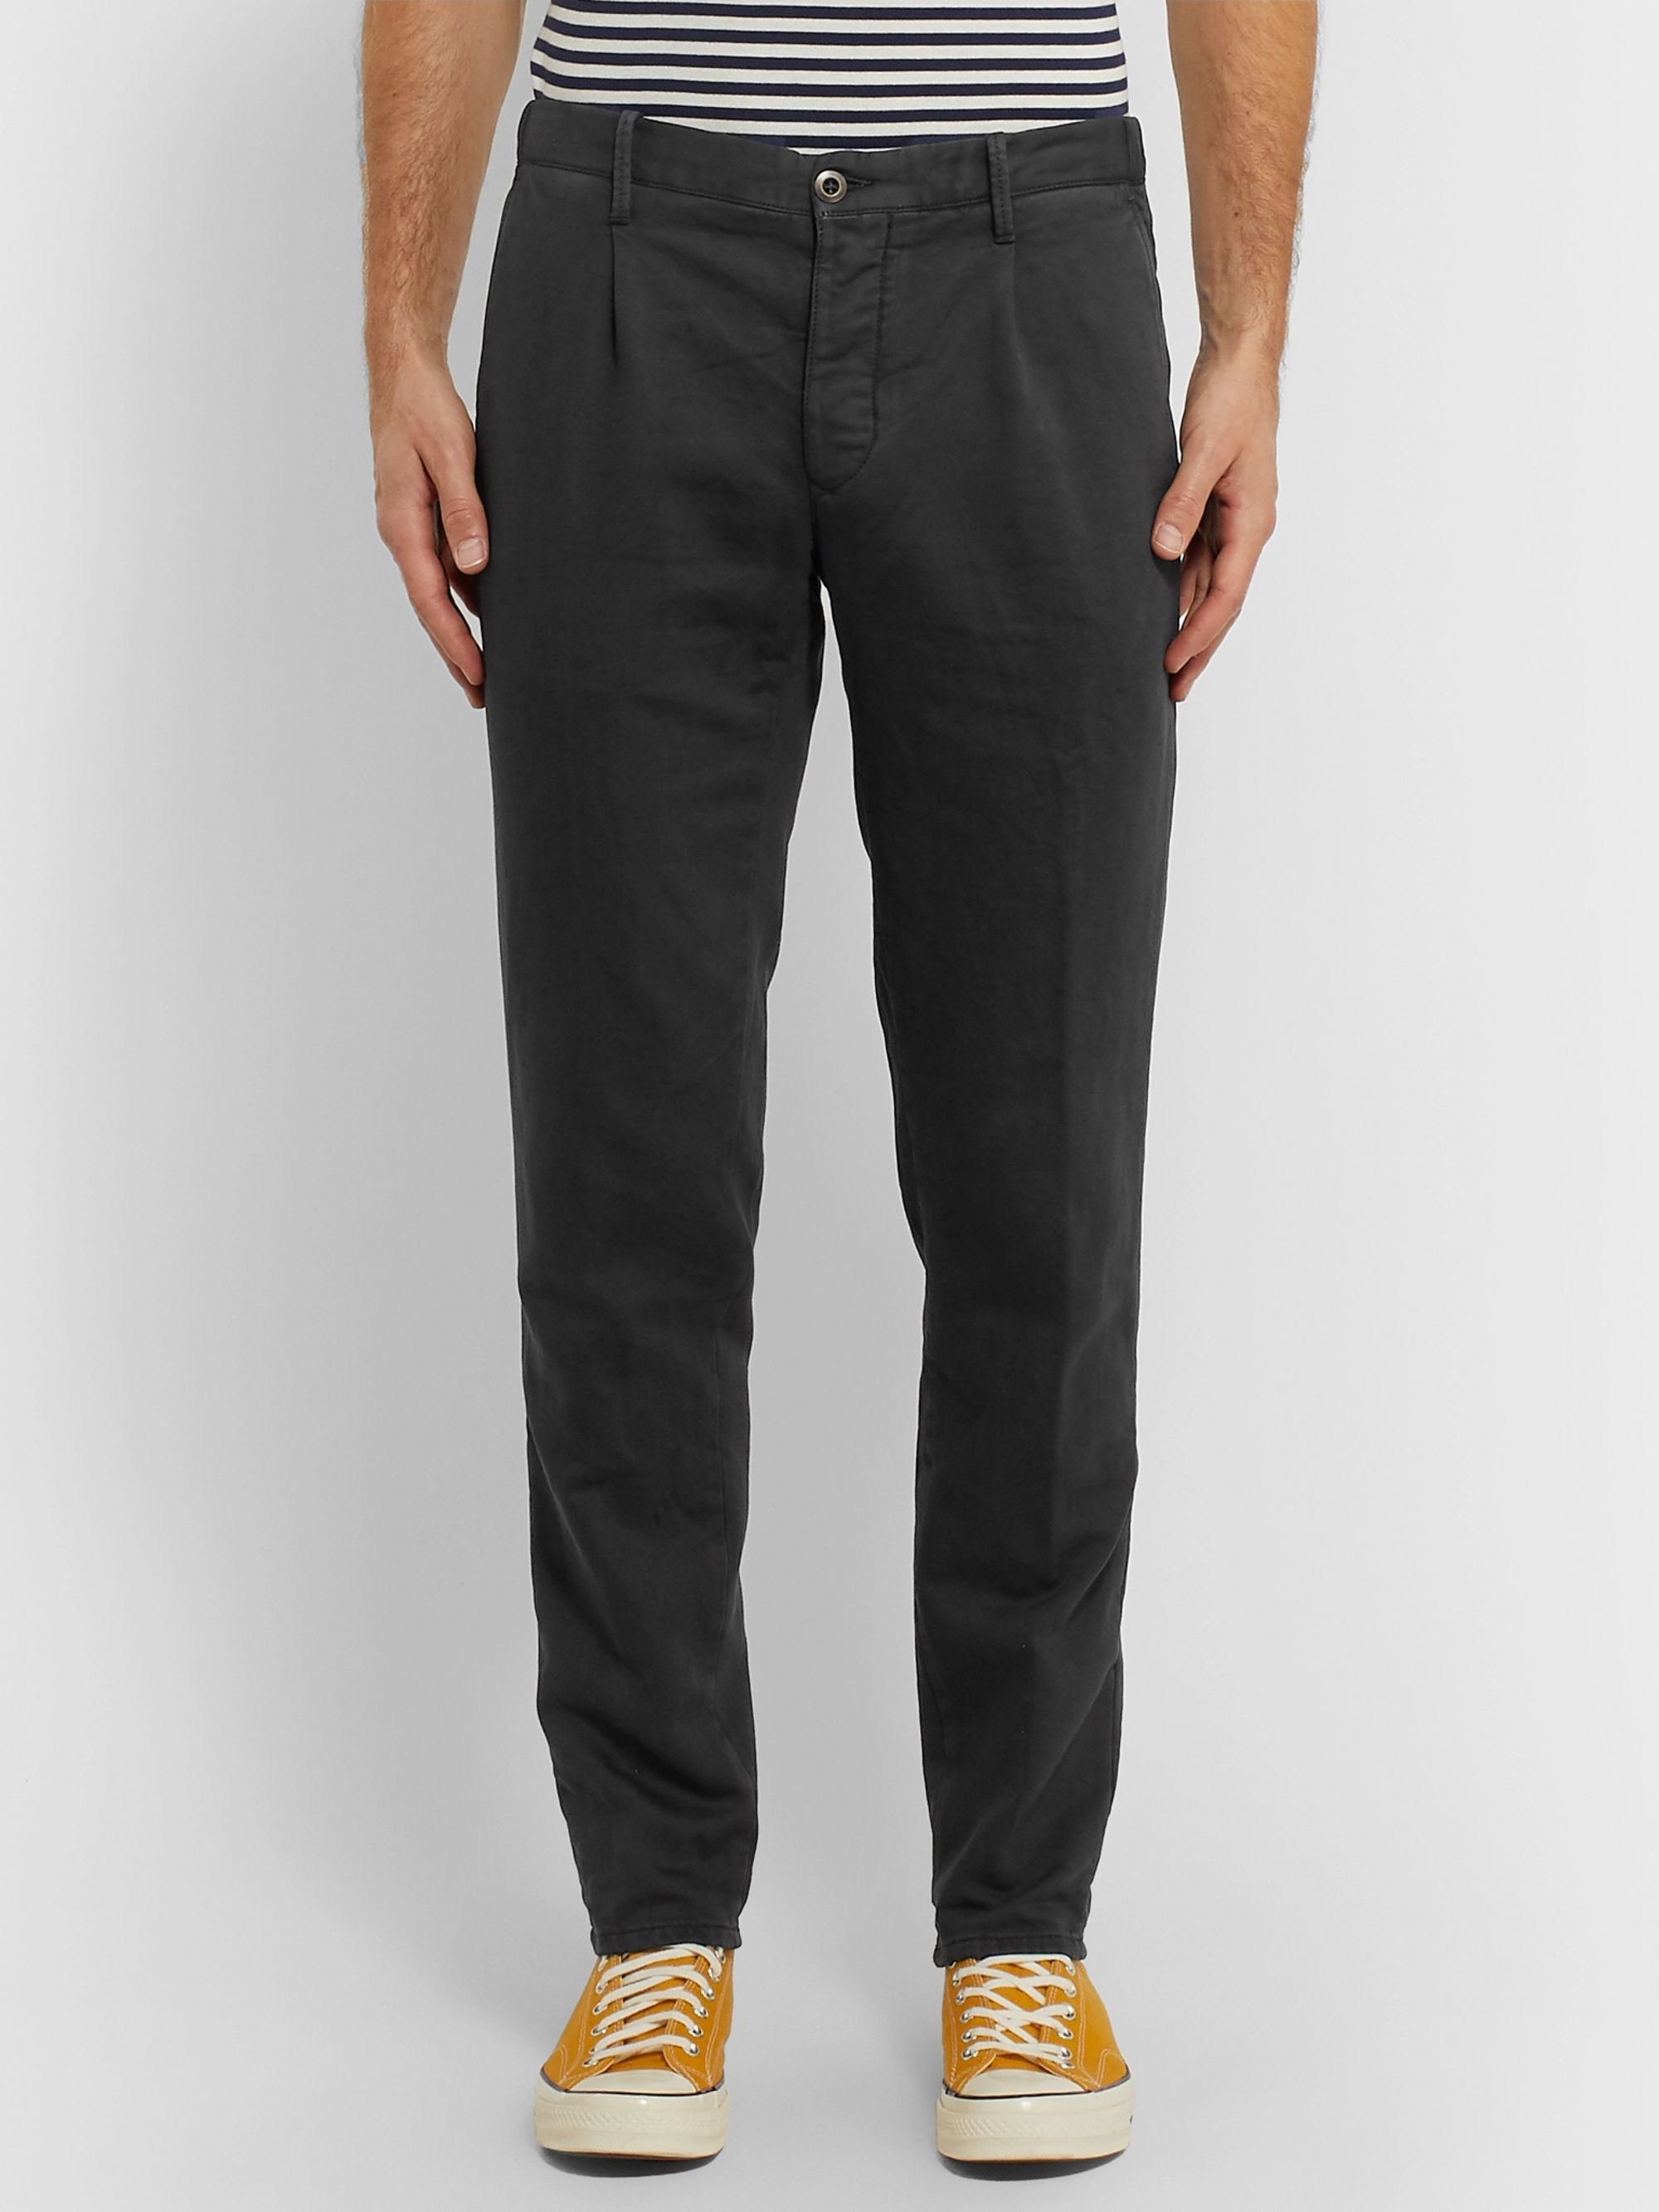 Incotex Slim-Fit Garment-Dyed Cotton-Blend Trousers